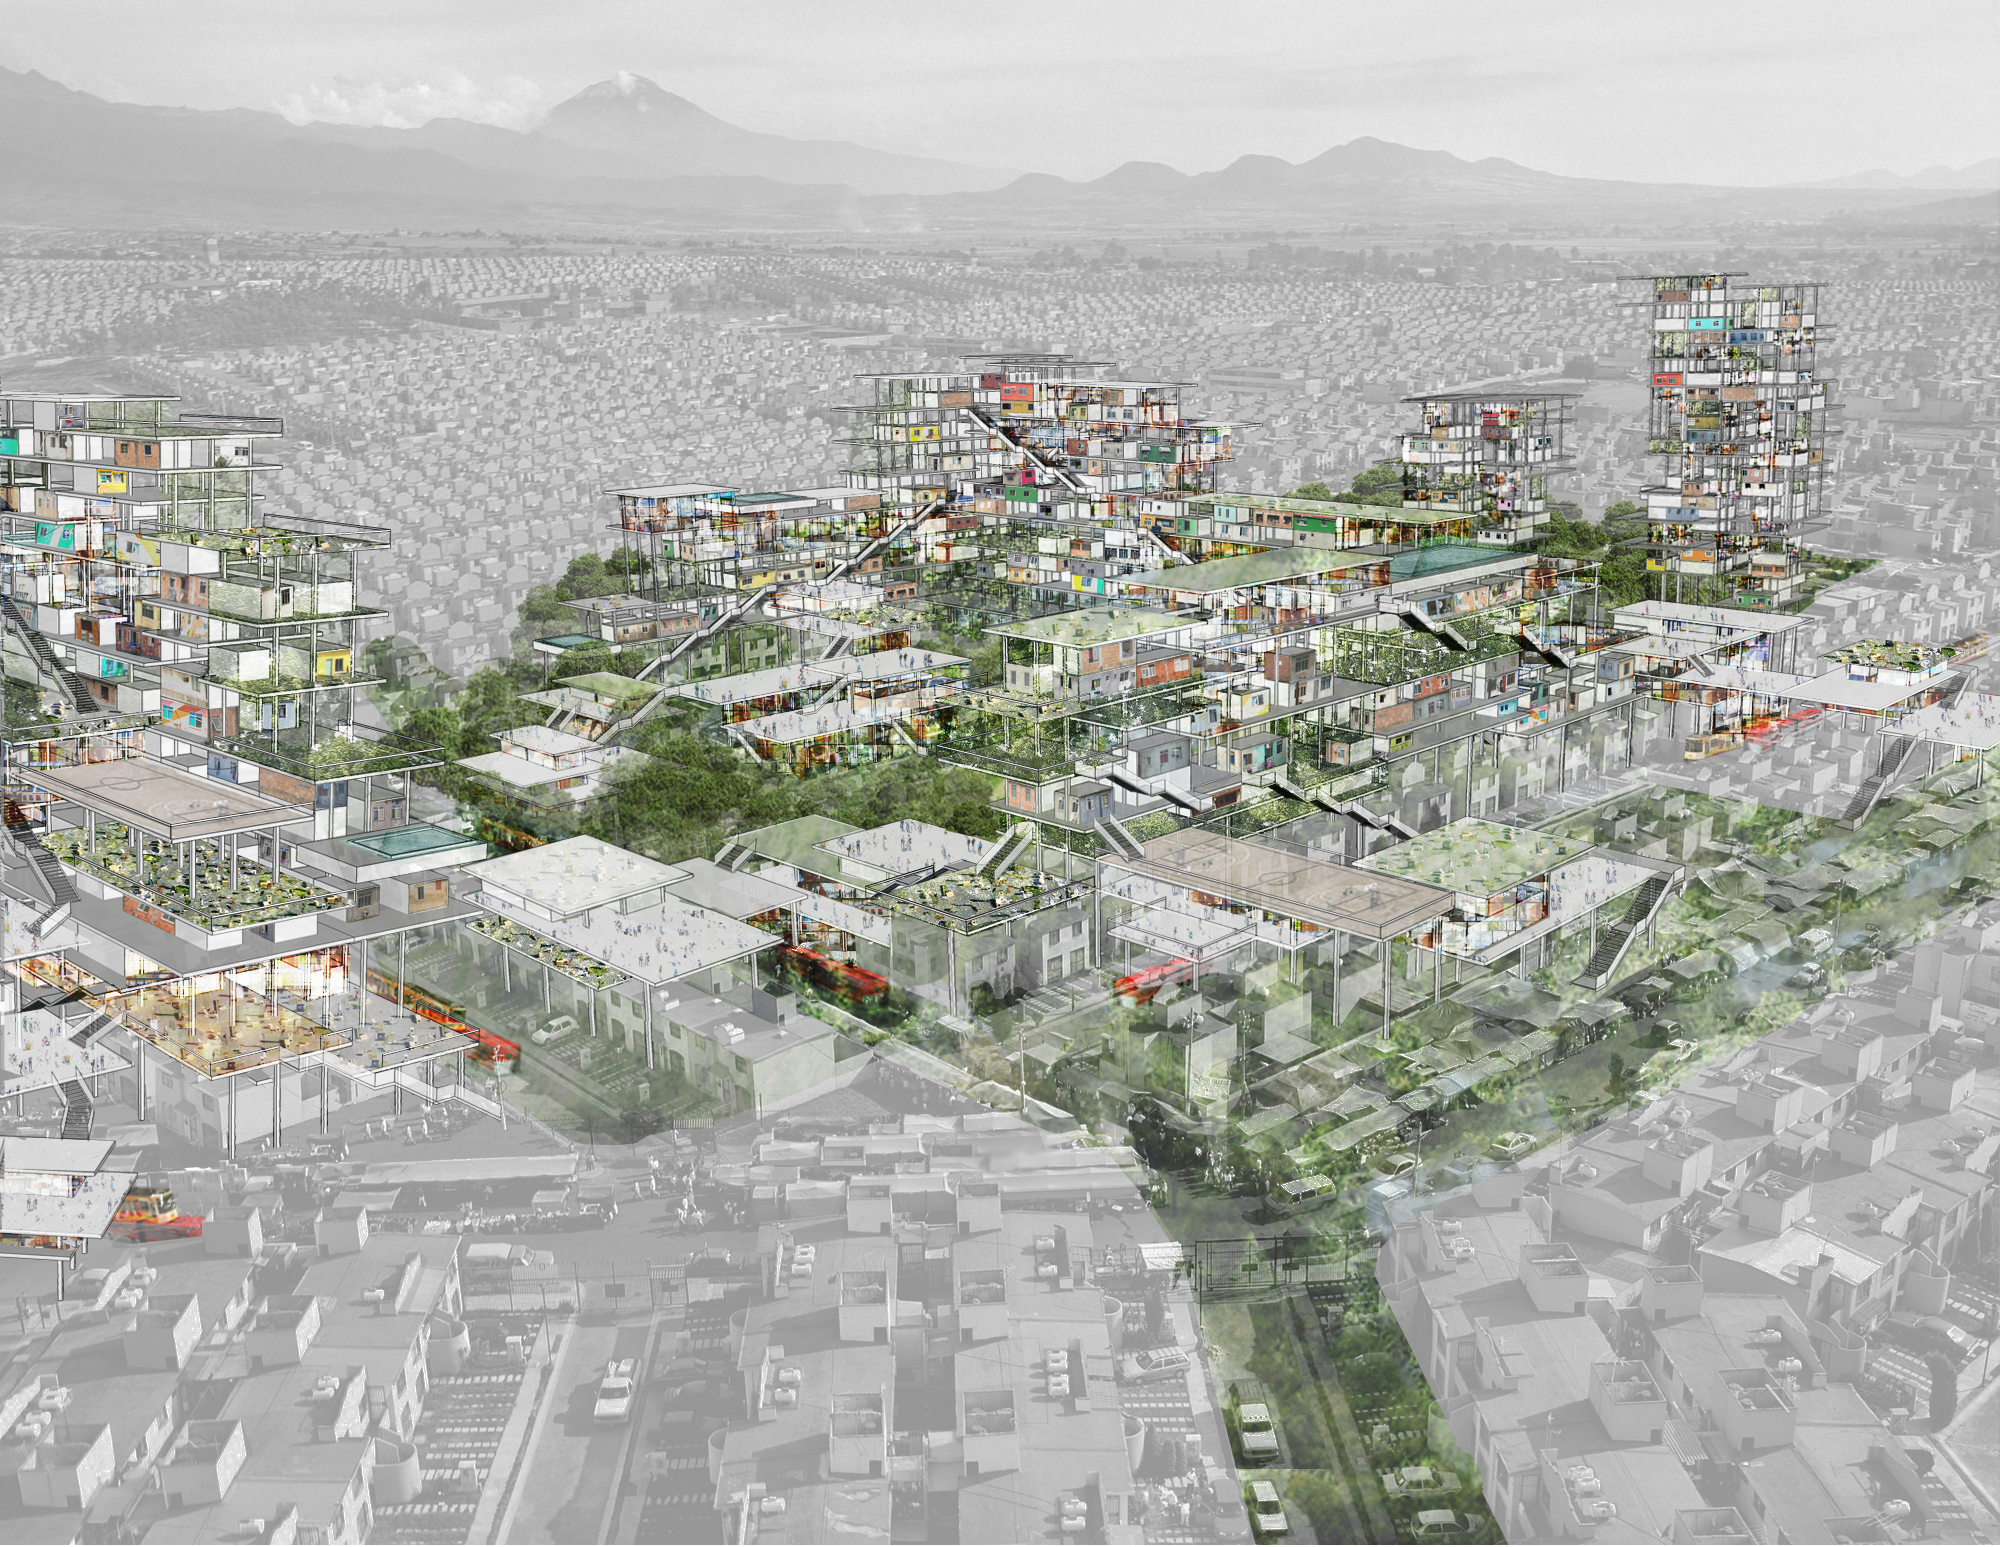 Palacio Social, 2016. This conceptual project seeks to address the more than 5 million abandoned houses in Mexico, the informal economy that contributes to sprawling housing development, and the vast majority (90%) of single-family housing stock. The project is a critical response to these converging factors and their impact on Mexico's urban extended growth model. Courtesy of Fernanda Canales.